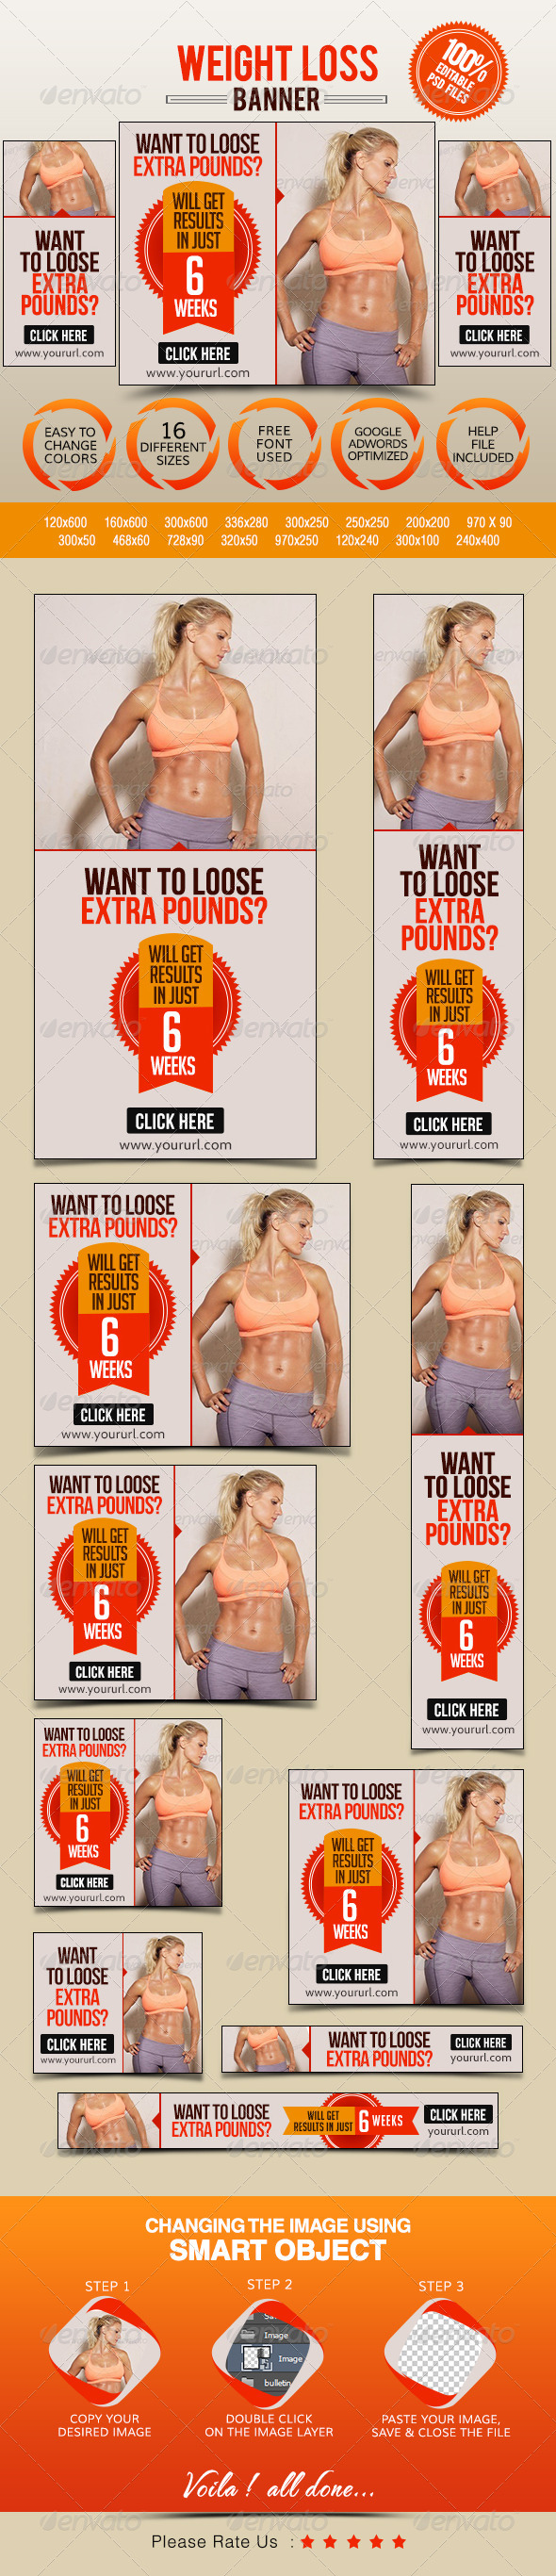 Weight Loss Banners